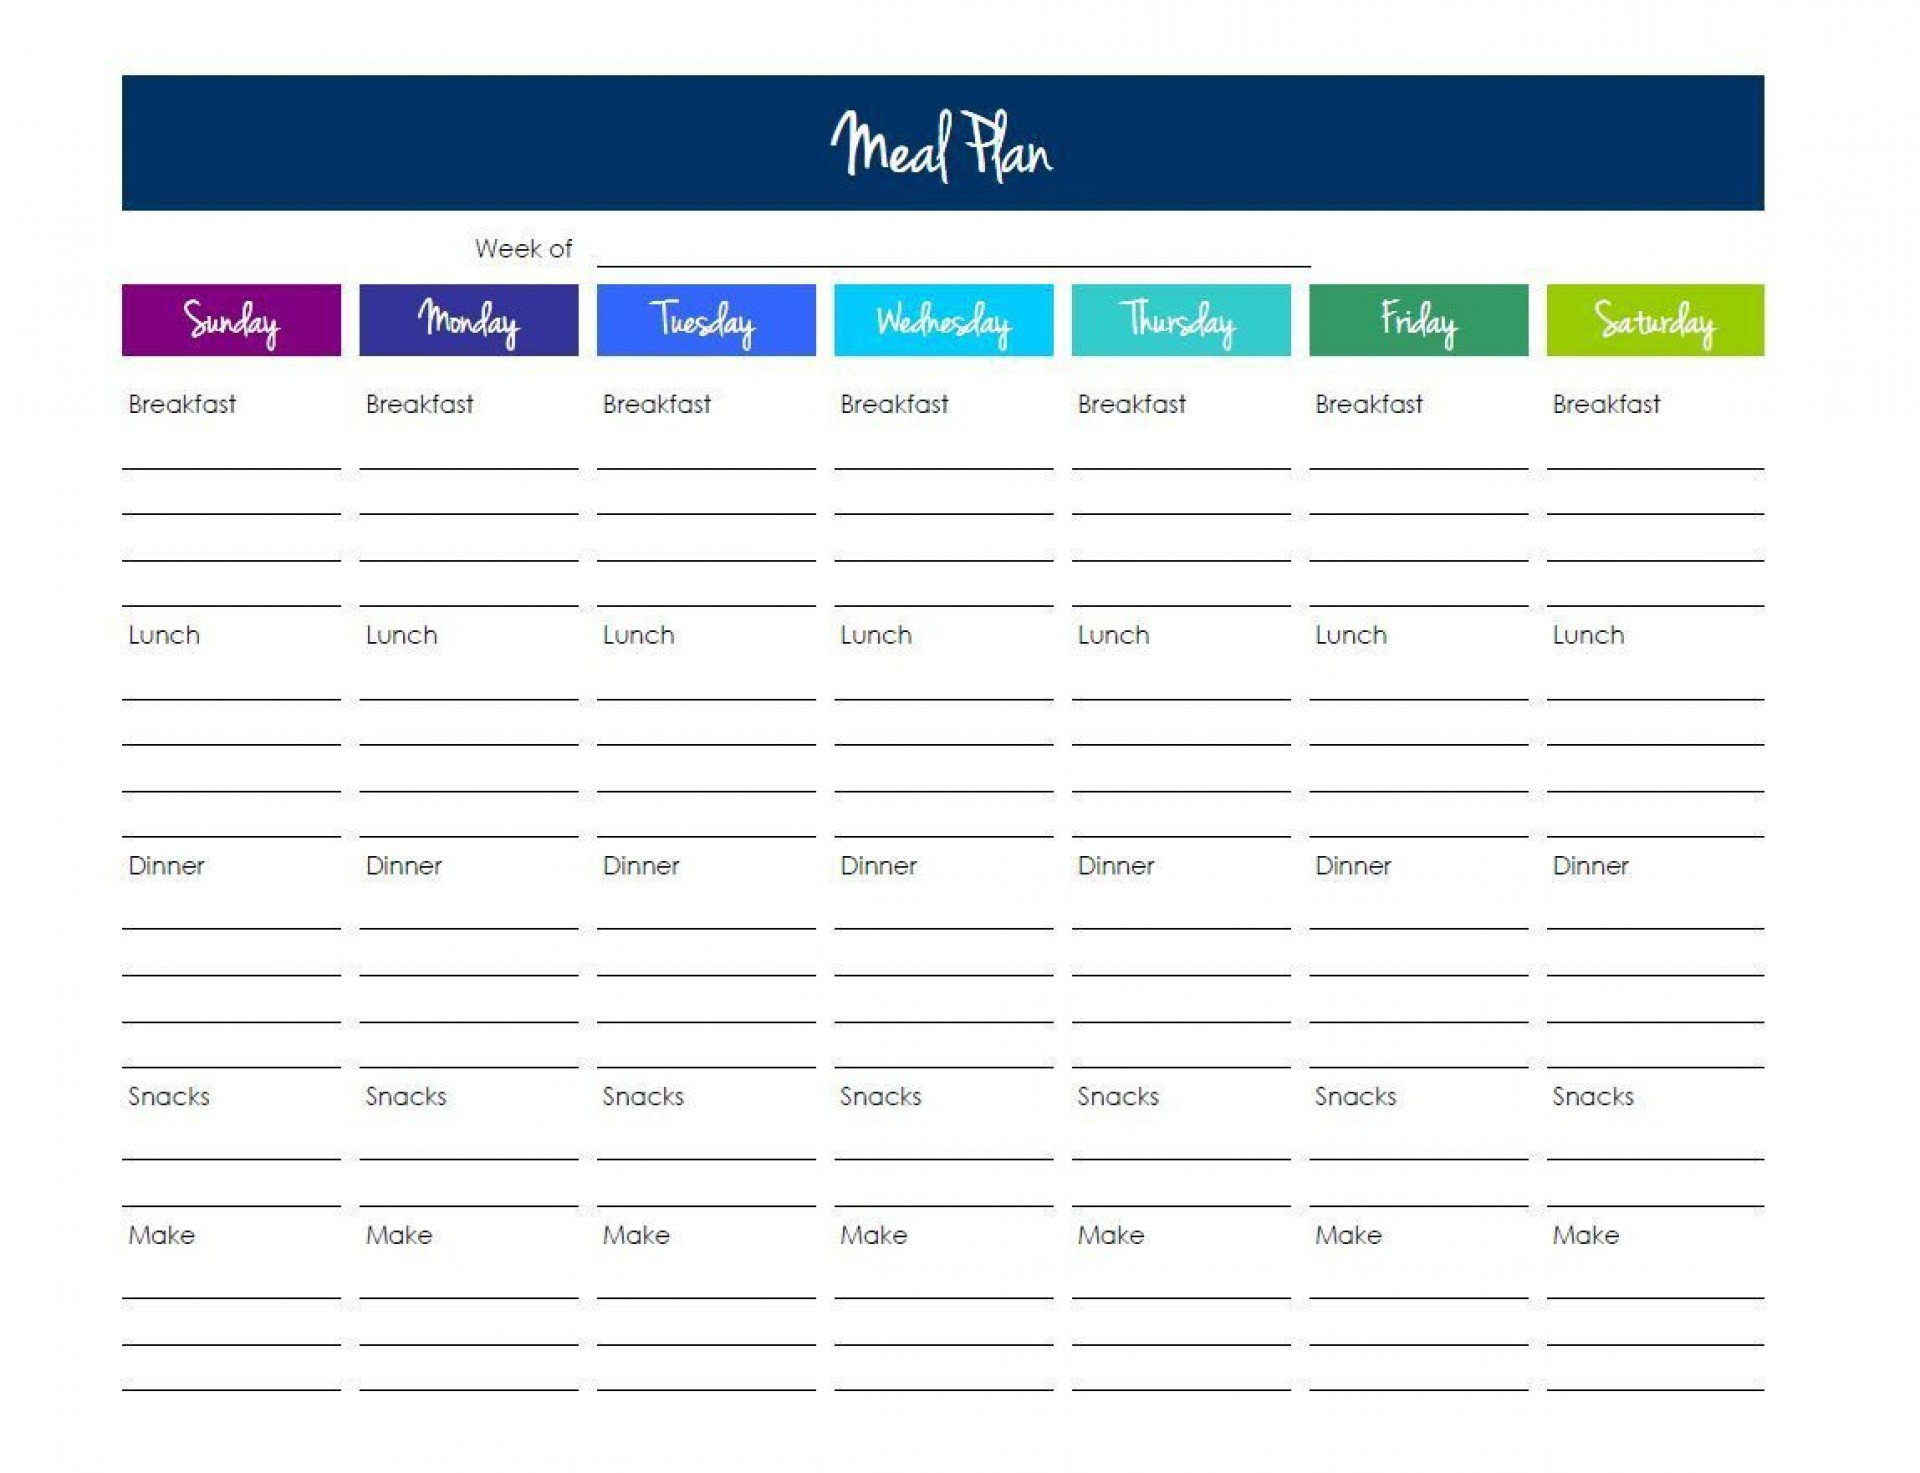 004 Breathtaking Meal Plan Template Excel High Resolution  Monthly Macro1920